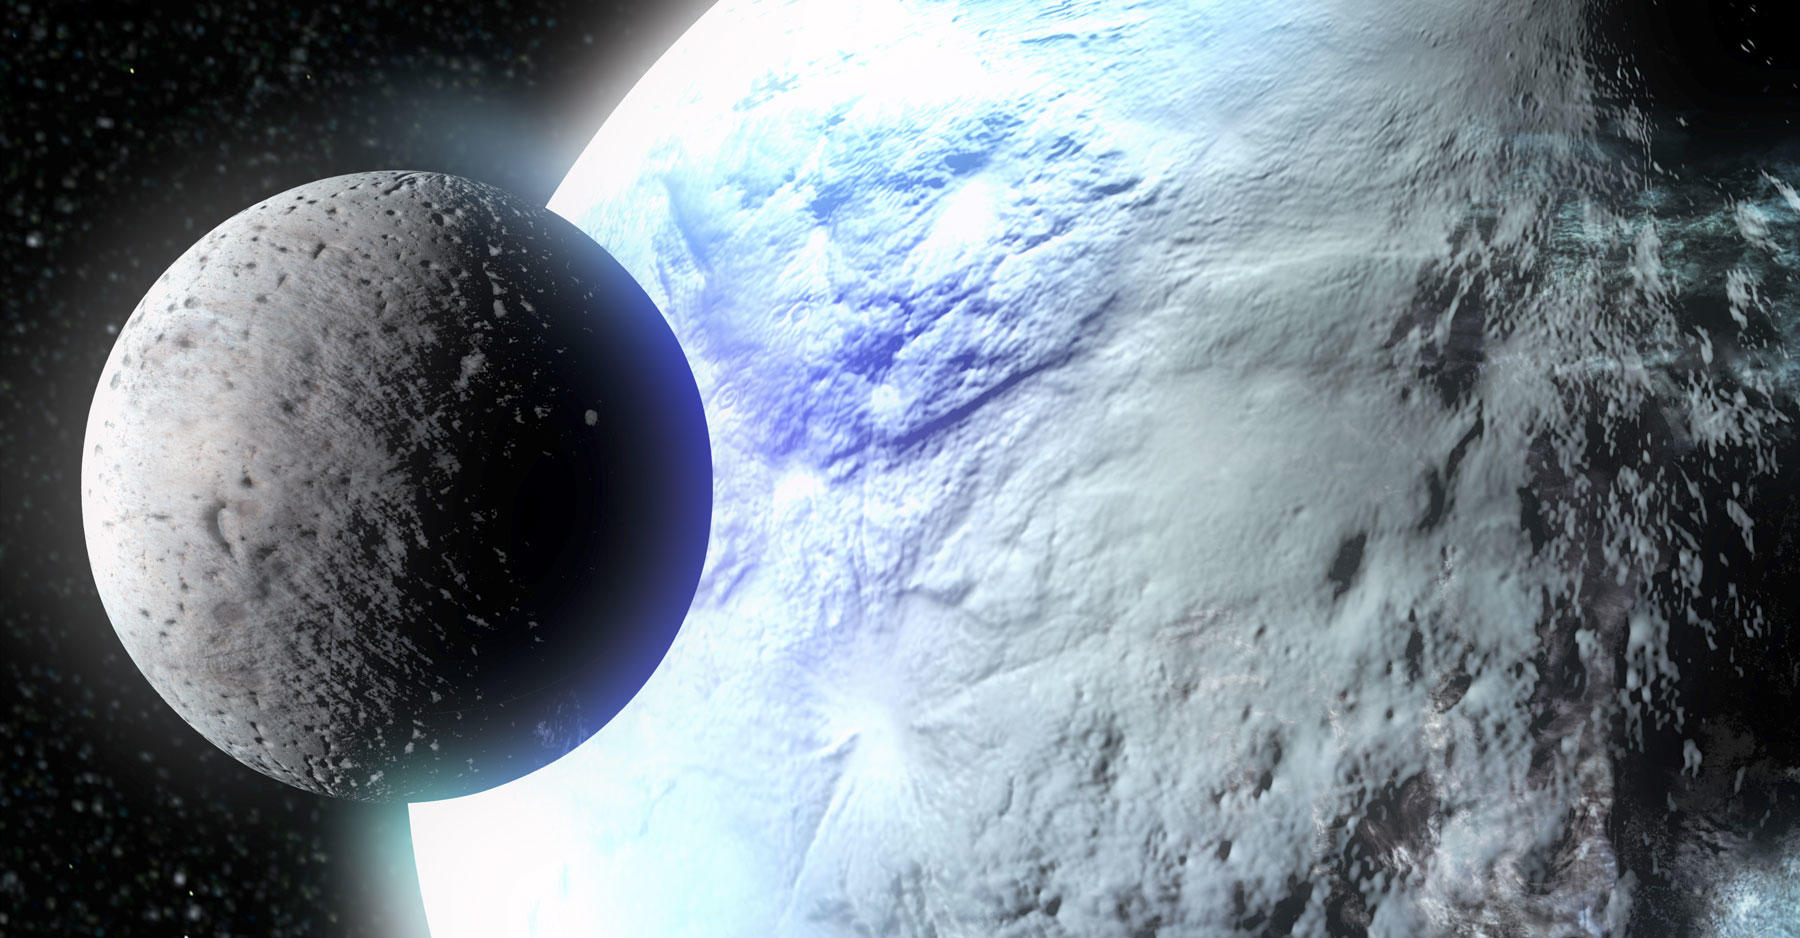 Artist impression of Pluto and an orbiting body